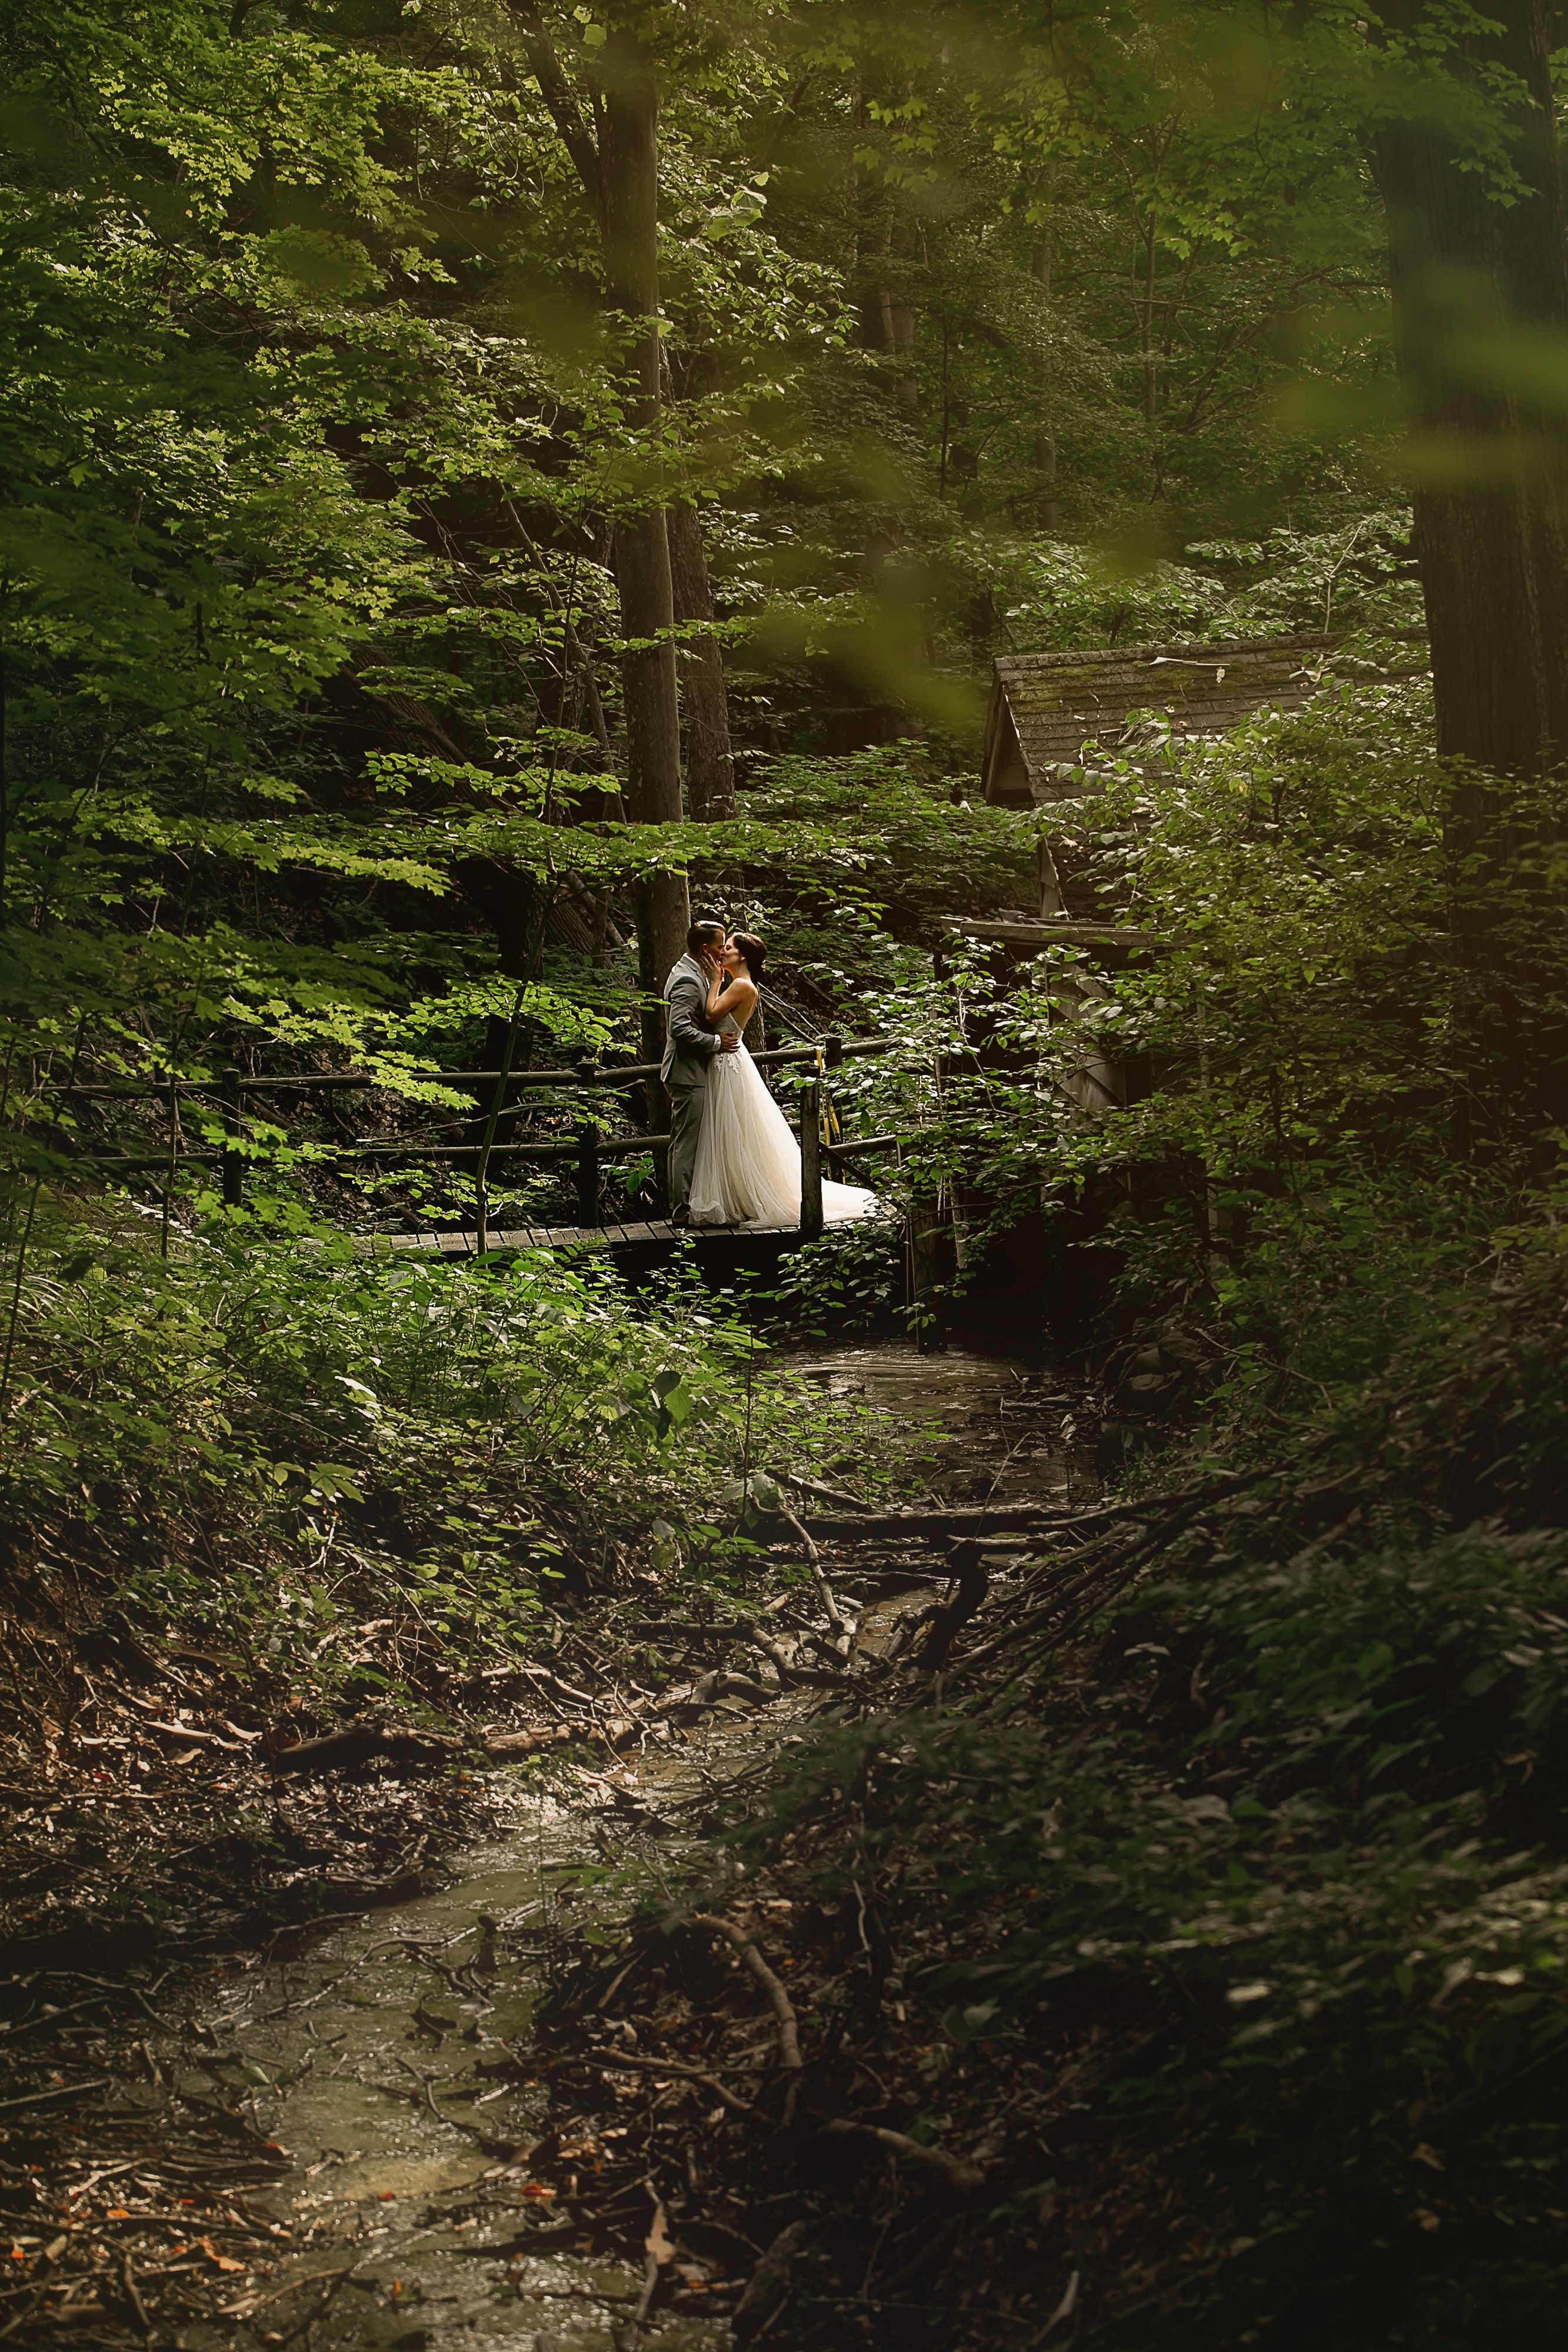 Our couples love this private bridge for a romantic photo-op ...